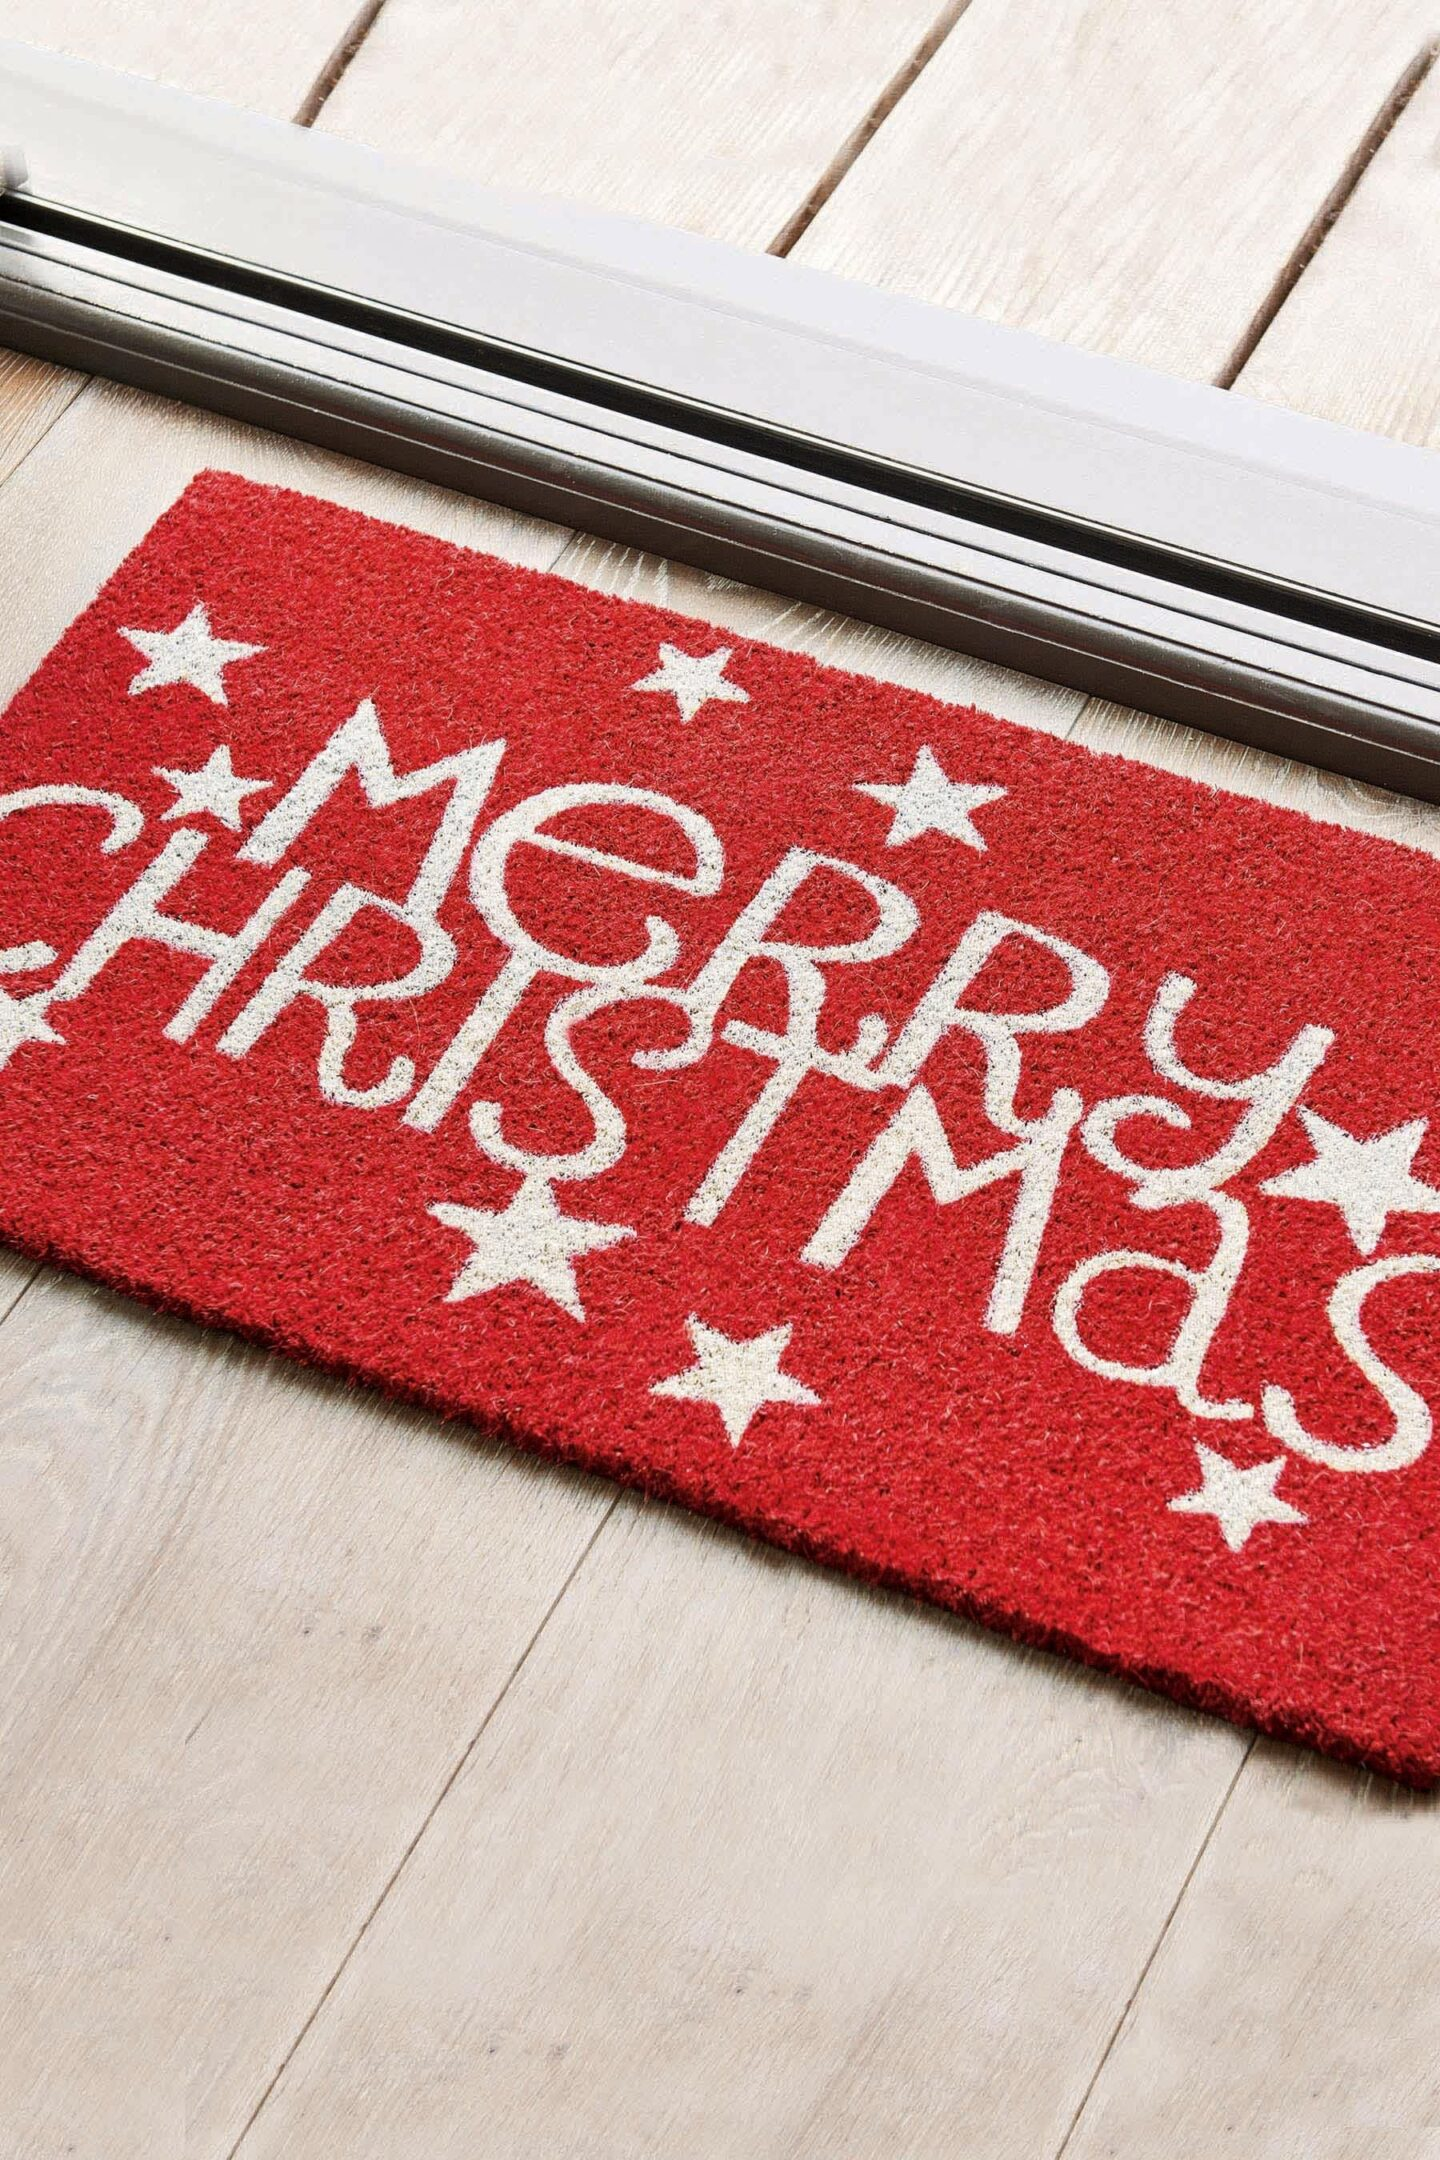 How to make your home more welcoming for guests this festive season